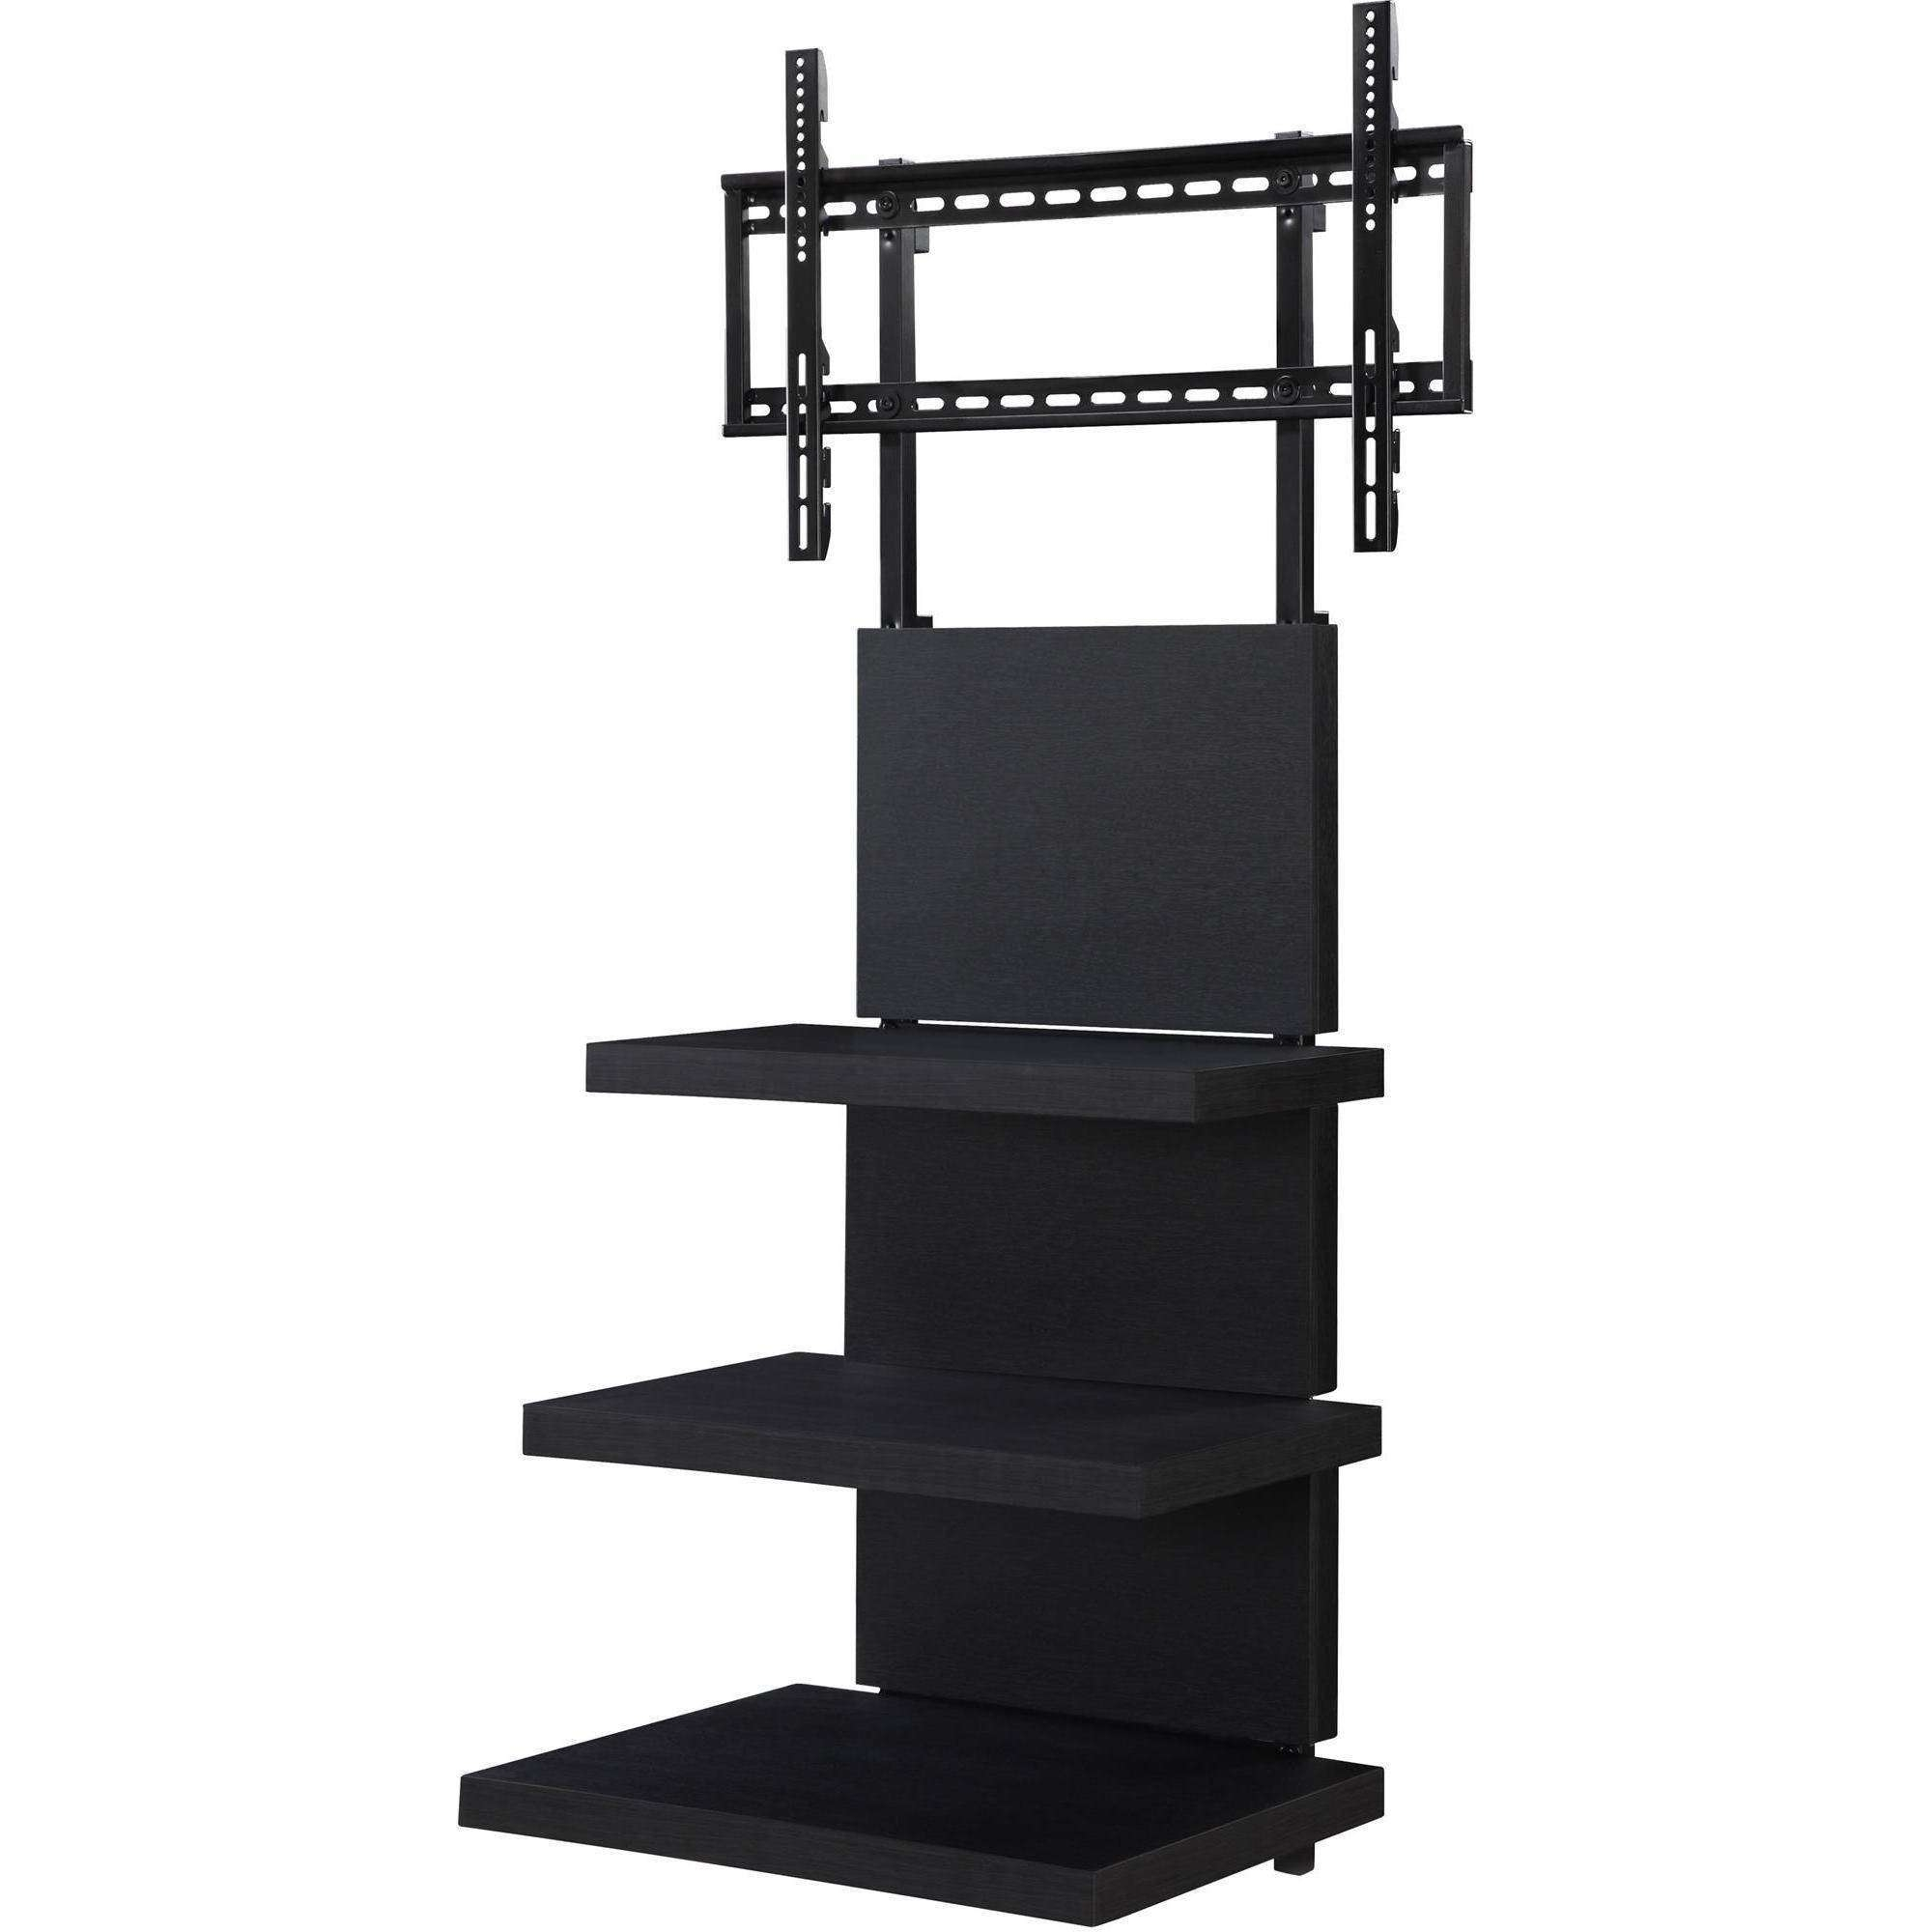 Ameriwood Home Elevation Altramount Tv Stand For Tvs Up To 60 With Wall Mounted Tv Stands With Shelves (View 3 of 15)